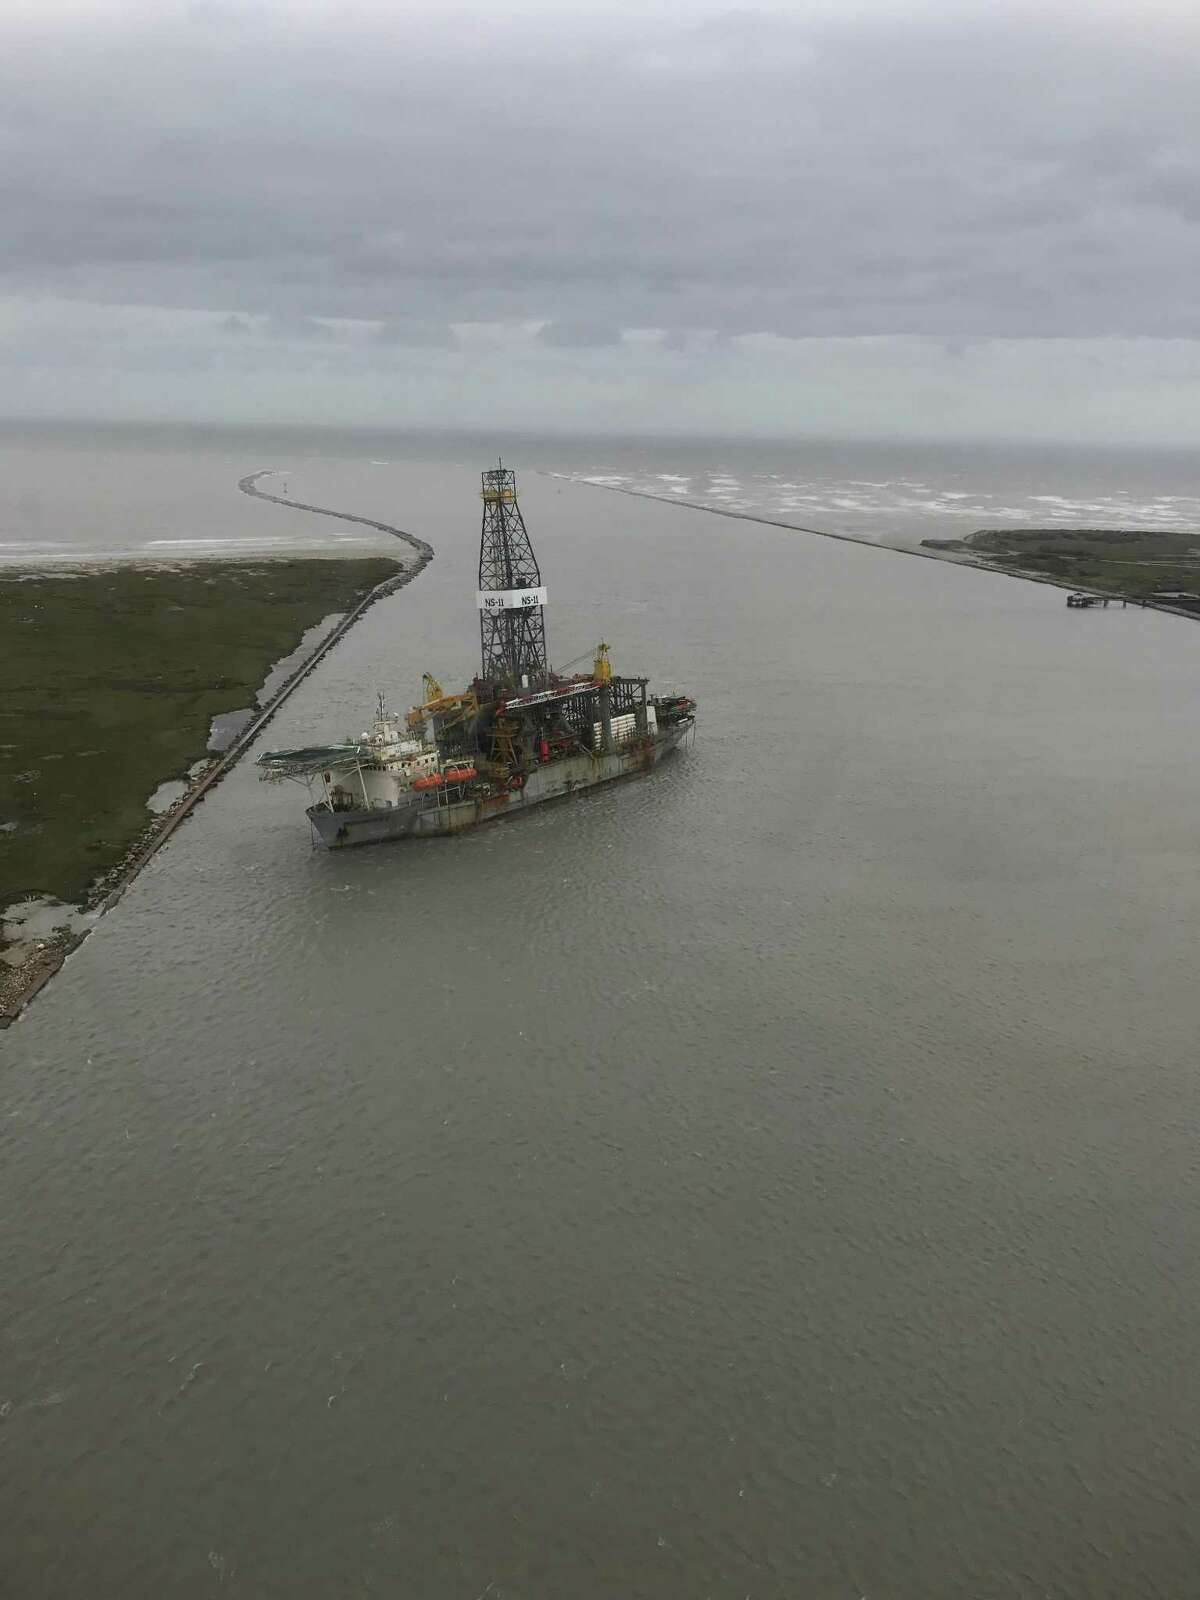 The Paragon DPDS1 drilling ship sits beached near the outlet to the Gulf of Mexico after being ripped from its mooring during Hurricane Harvey.